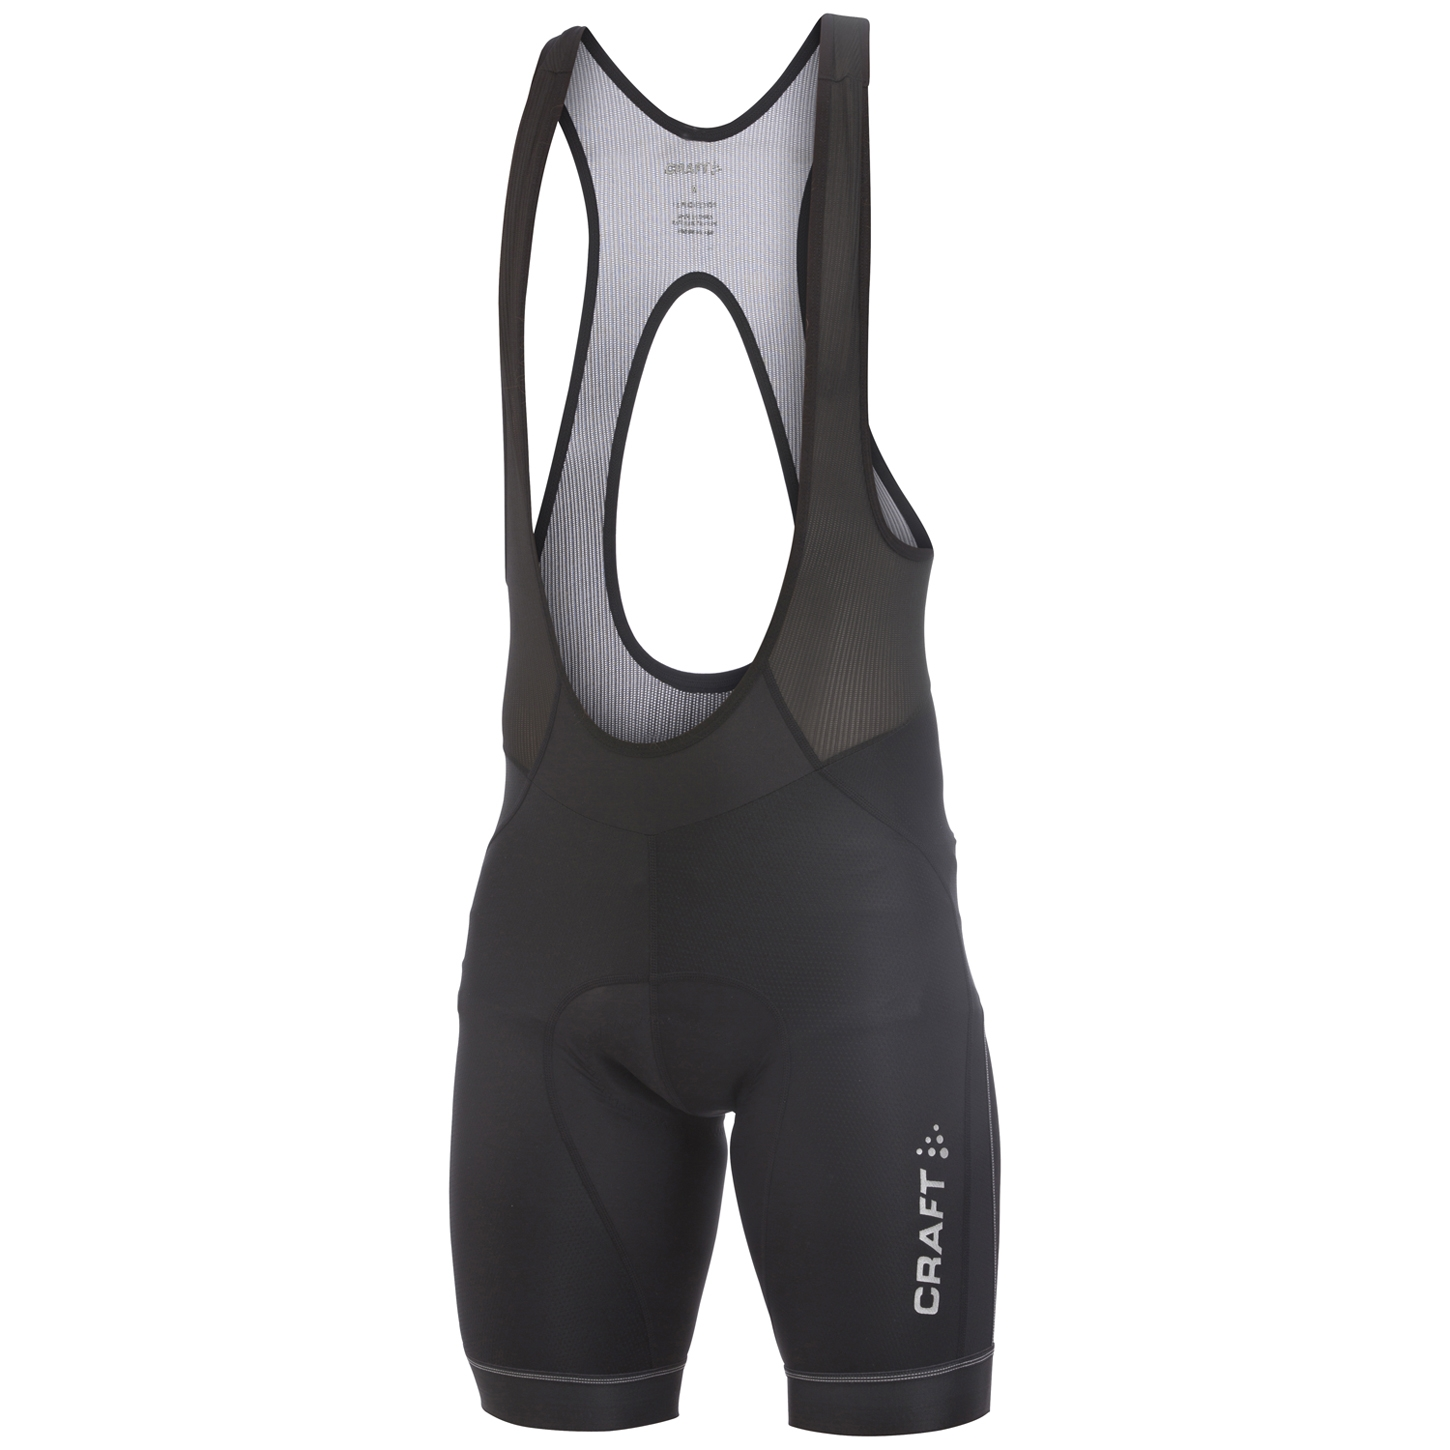 Culotte corto con tirantes CRAFT PERFORMANCE Negro